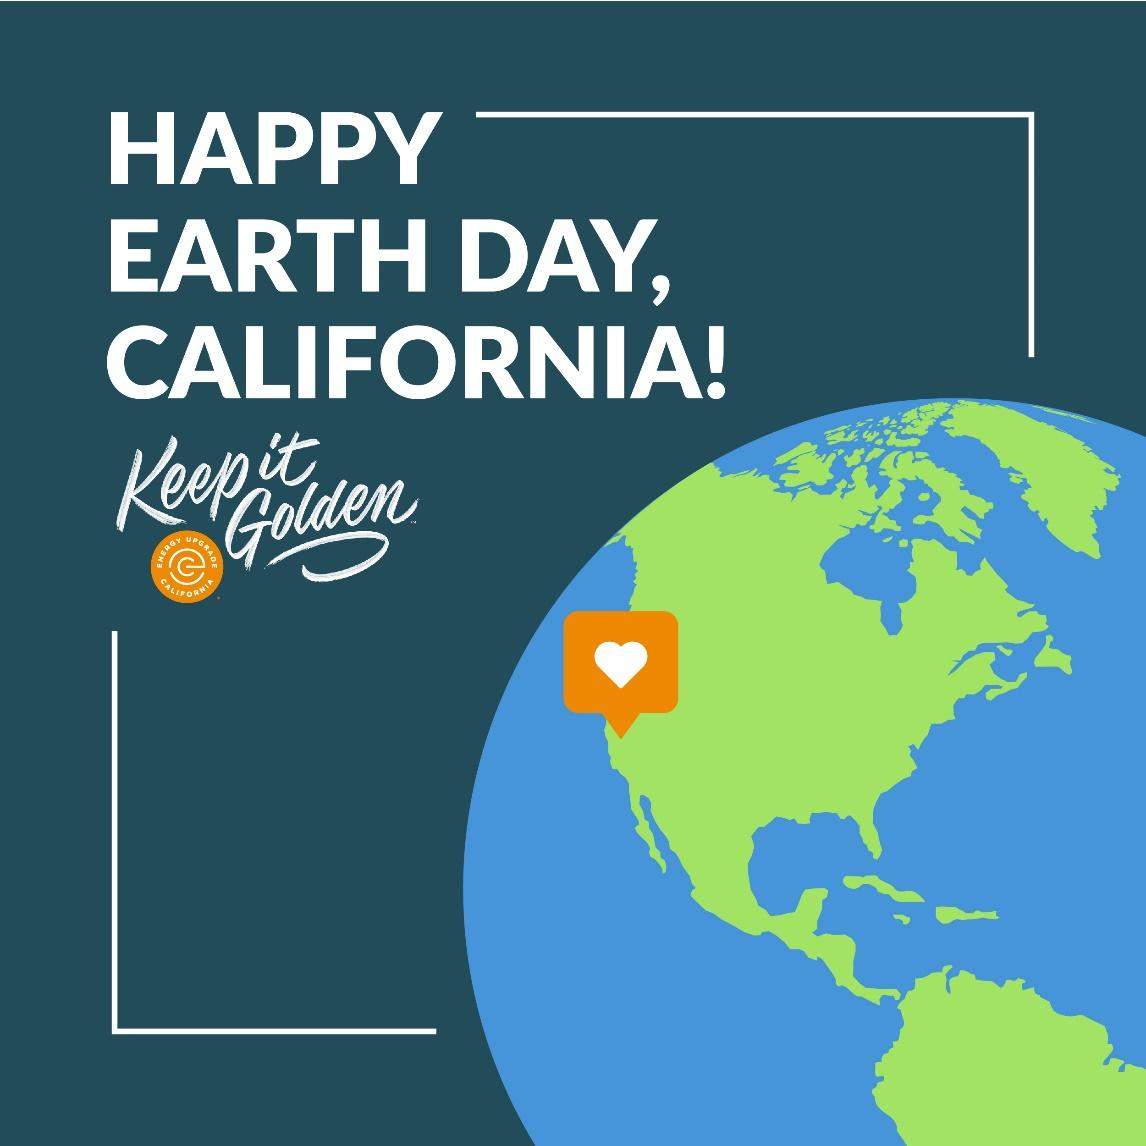 D:\Everything I saved working from home\Blogs\Earth Day Blogs\4.22.21 -4 Happy Earth Day, CA - Energy Upgrade.jpg